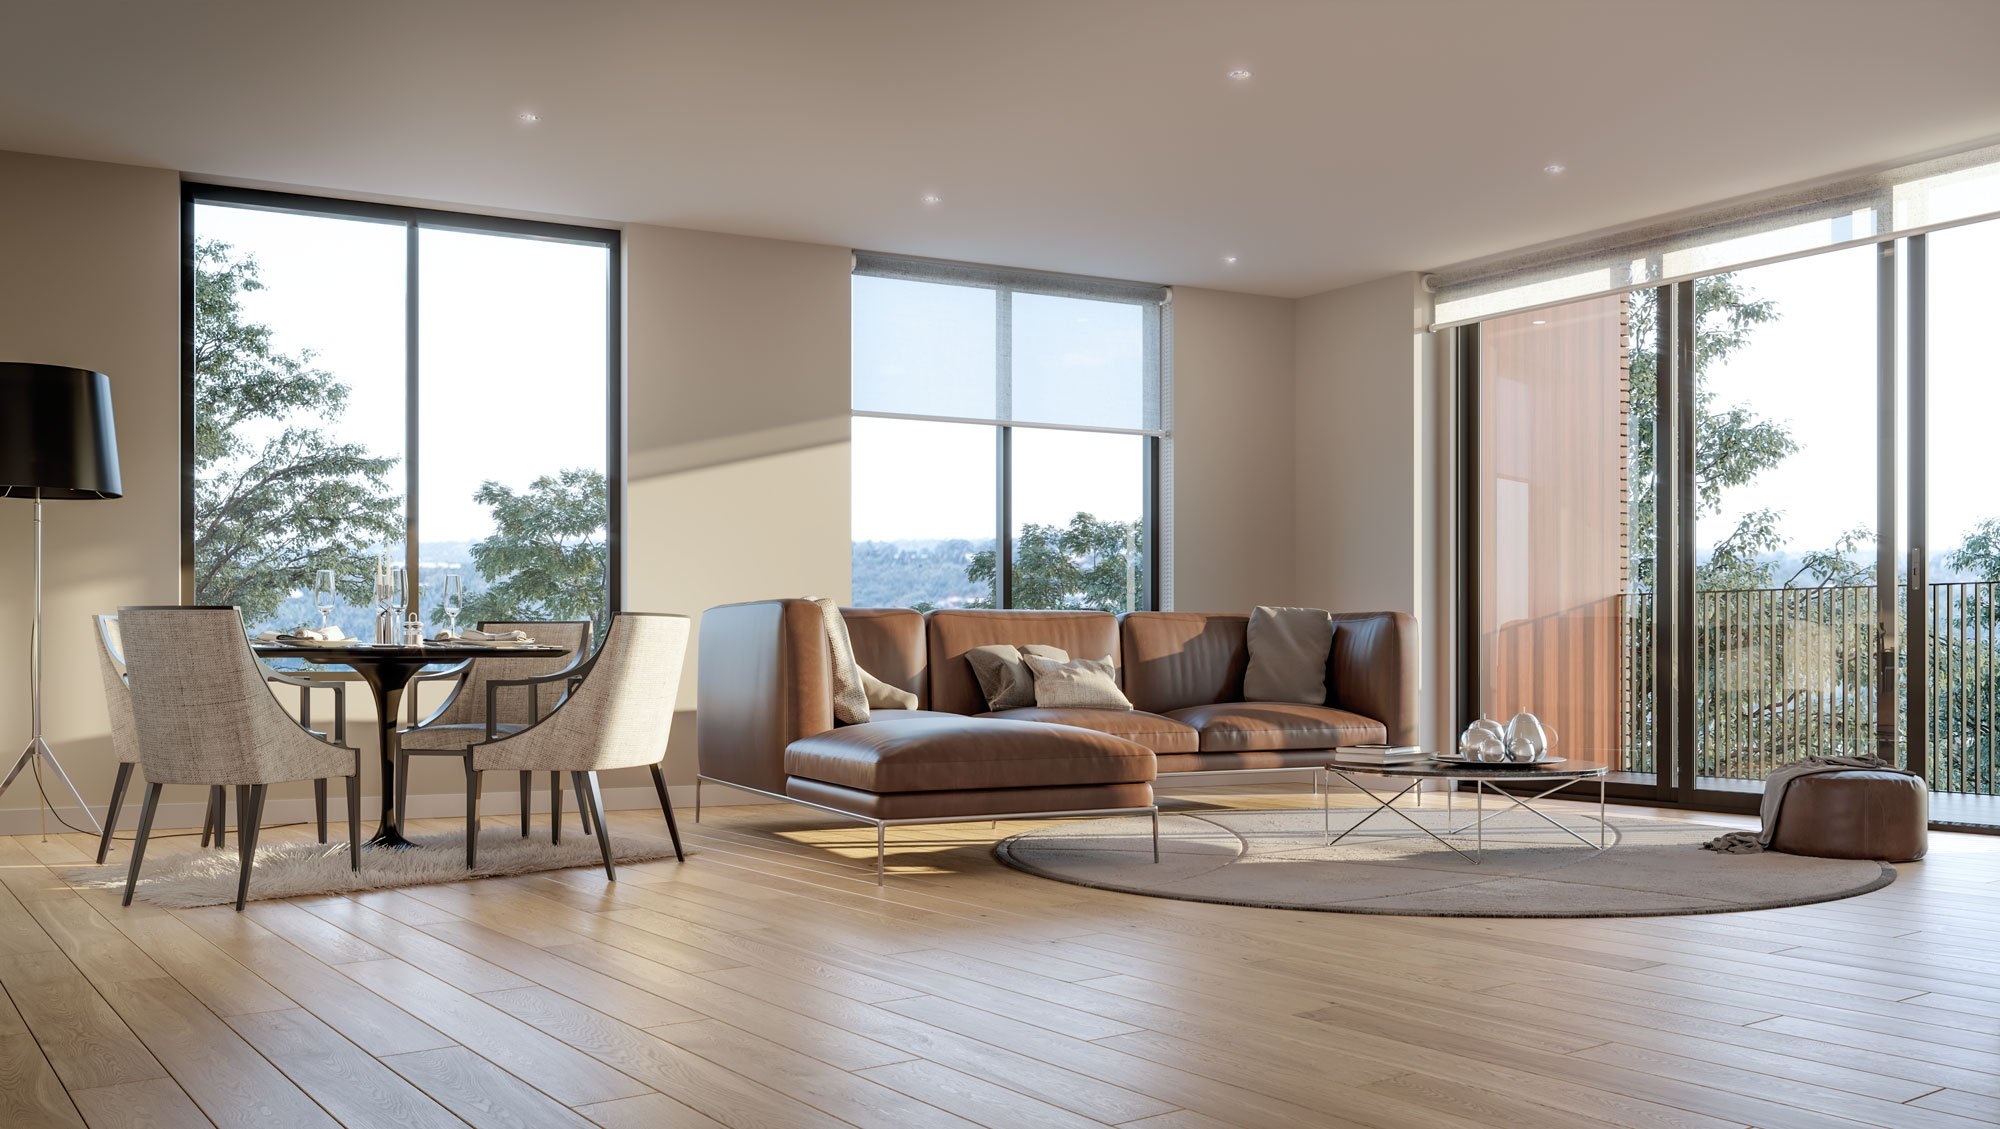 The Orchards apartment lounge and dining interior with timber floorboards and floor to ceiling windows (artist's impression)